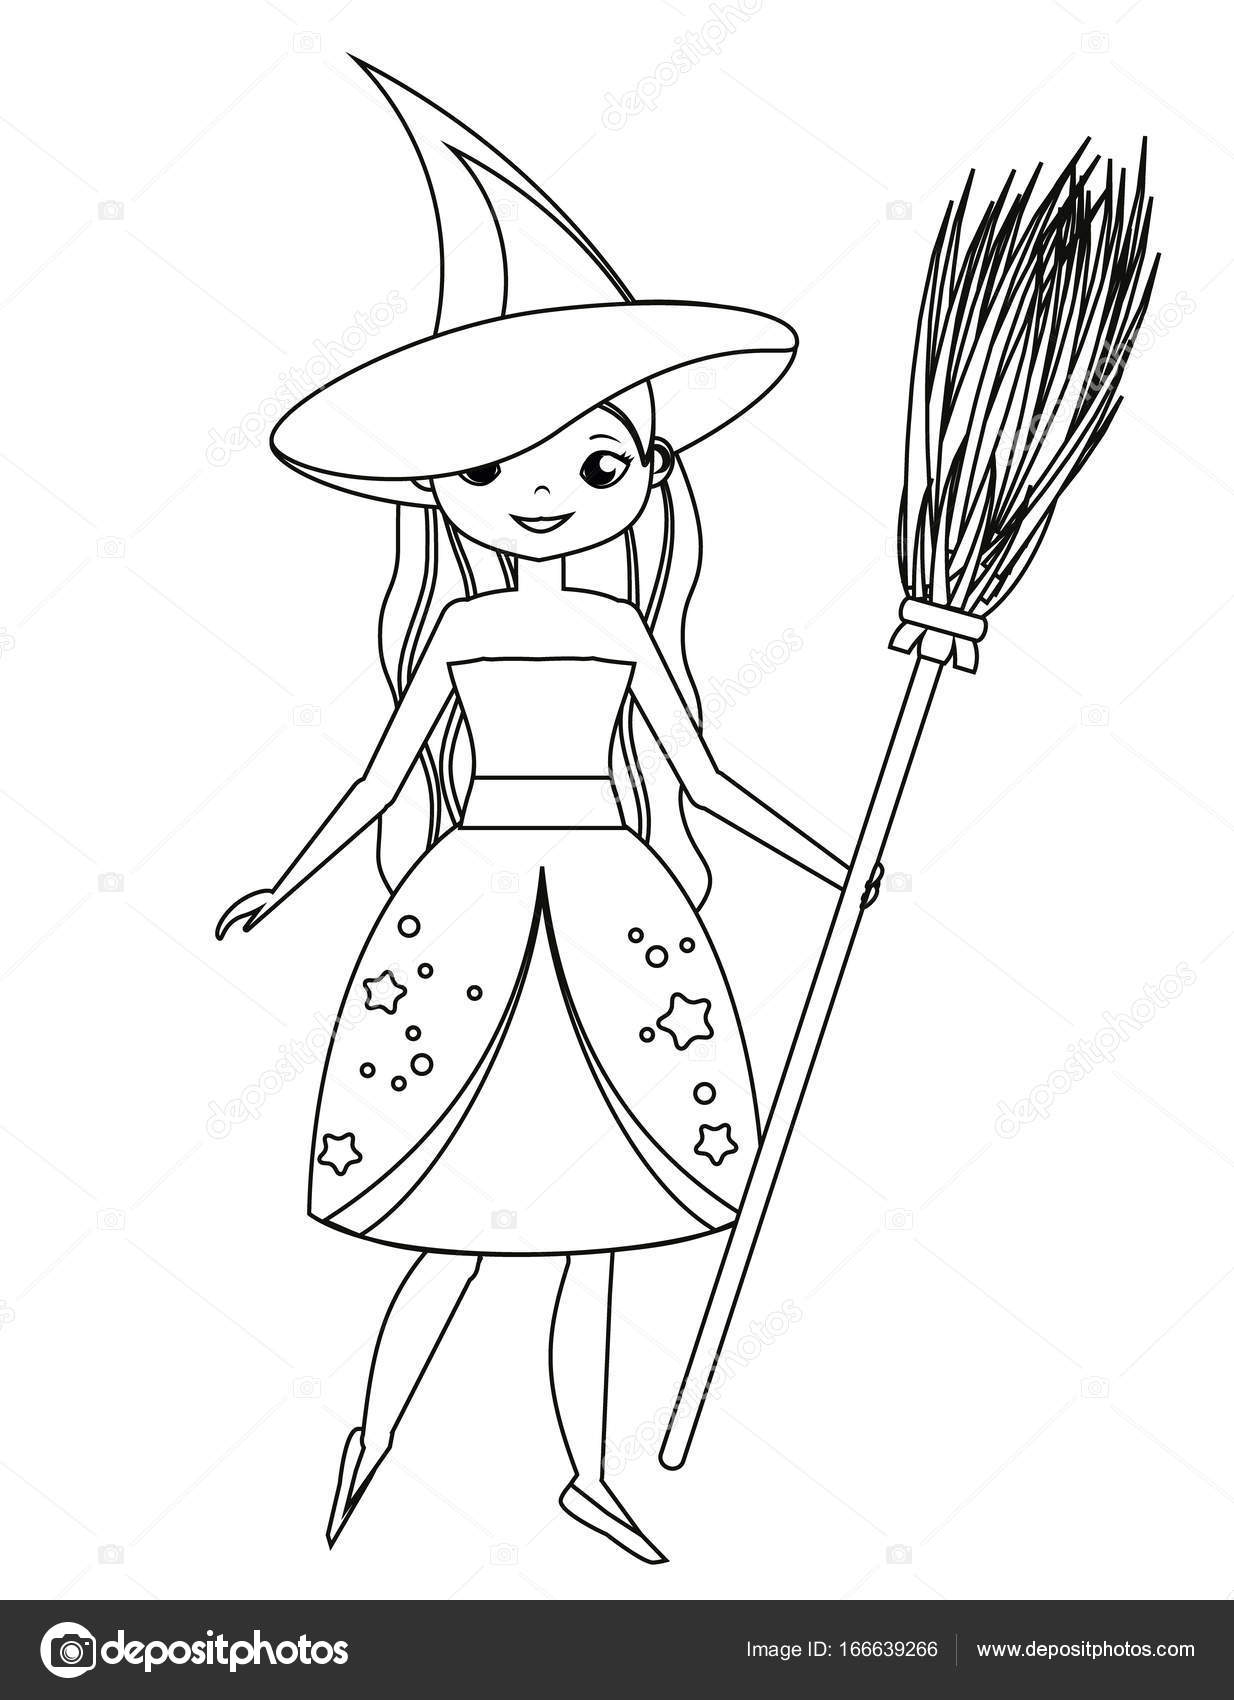 1234x1700 Coloring Page For Children. Cute Witch Holding Broom. Girl